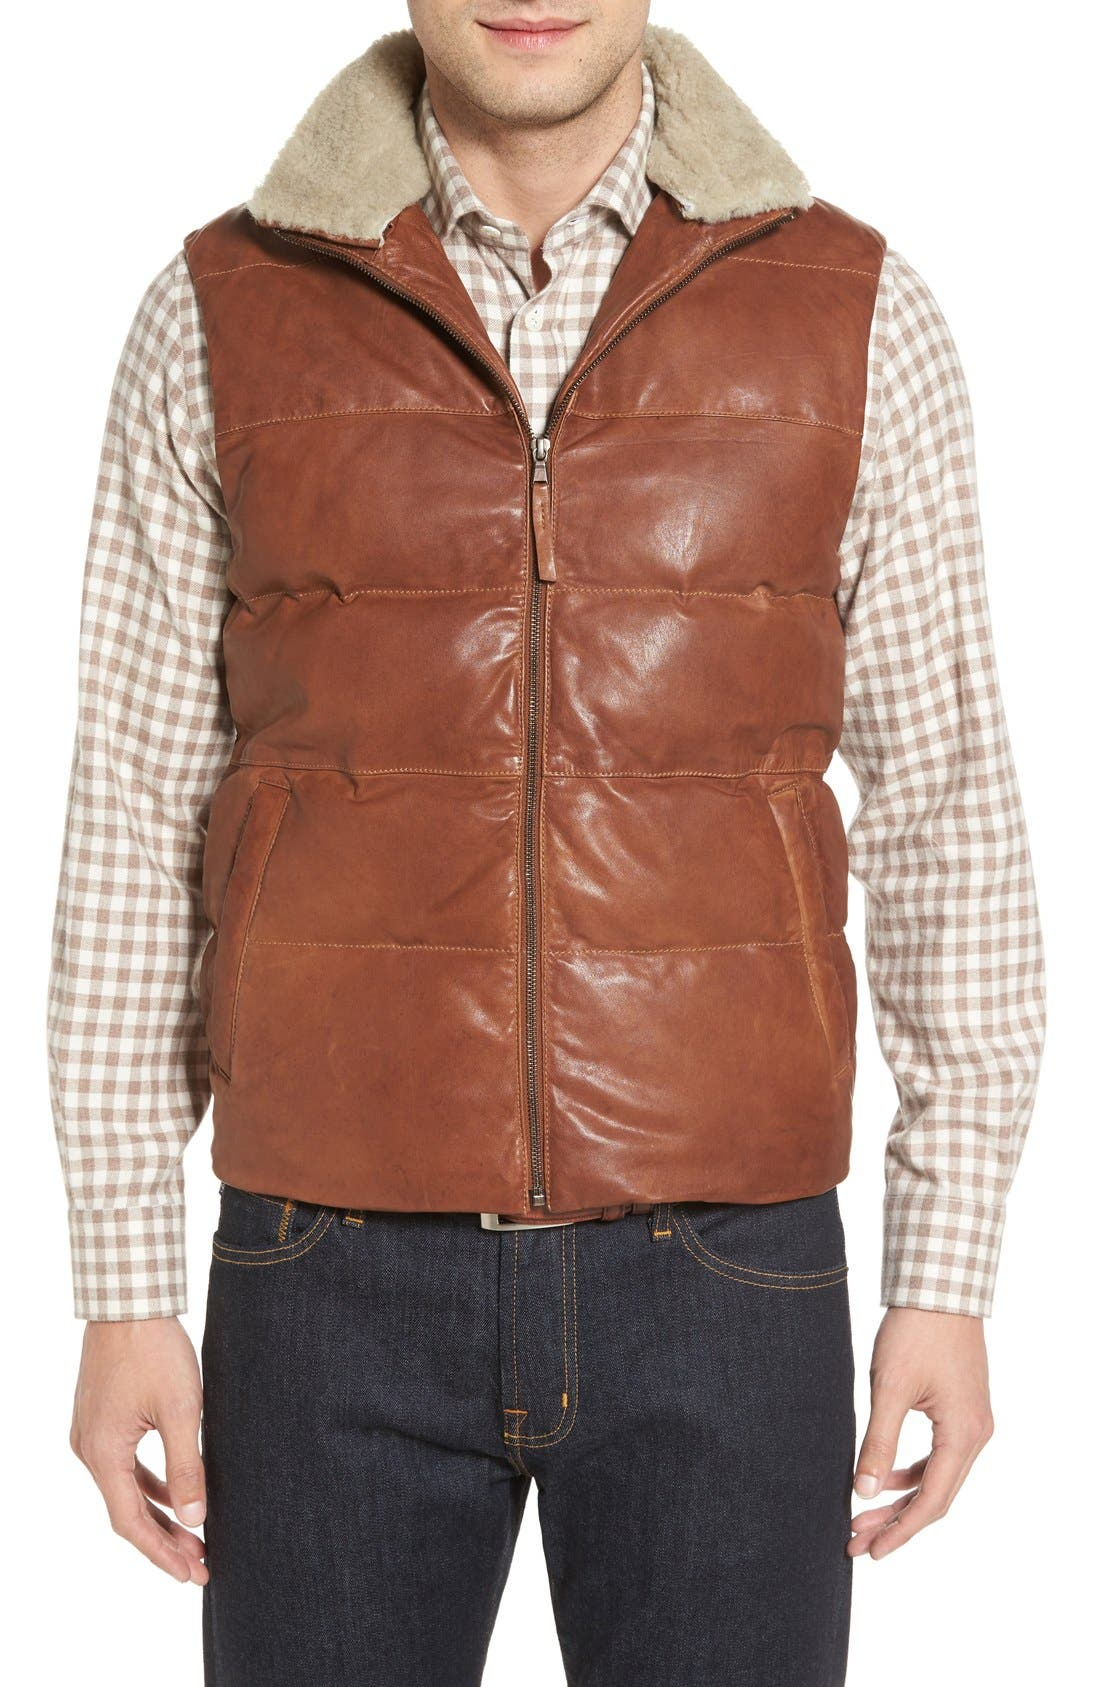 Quilted Leather Vest with Removable Genuine Shearling Collar,                             Main thumbnail 1, color,                             210